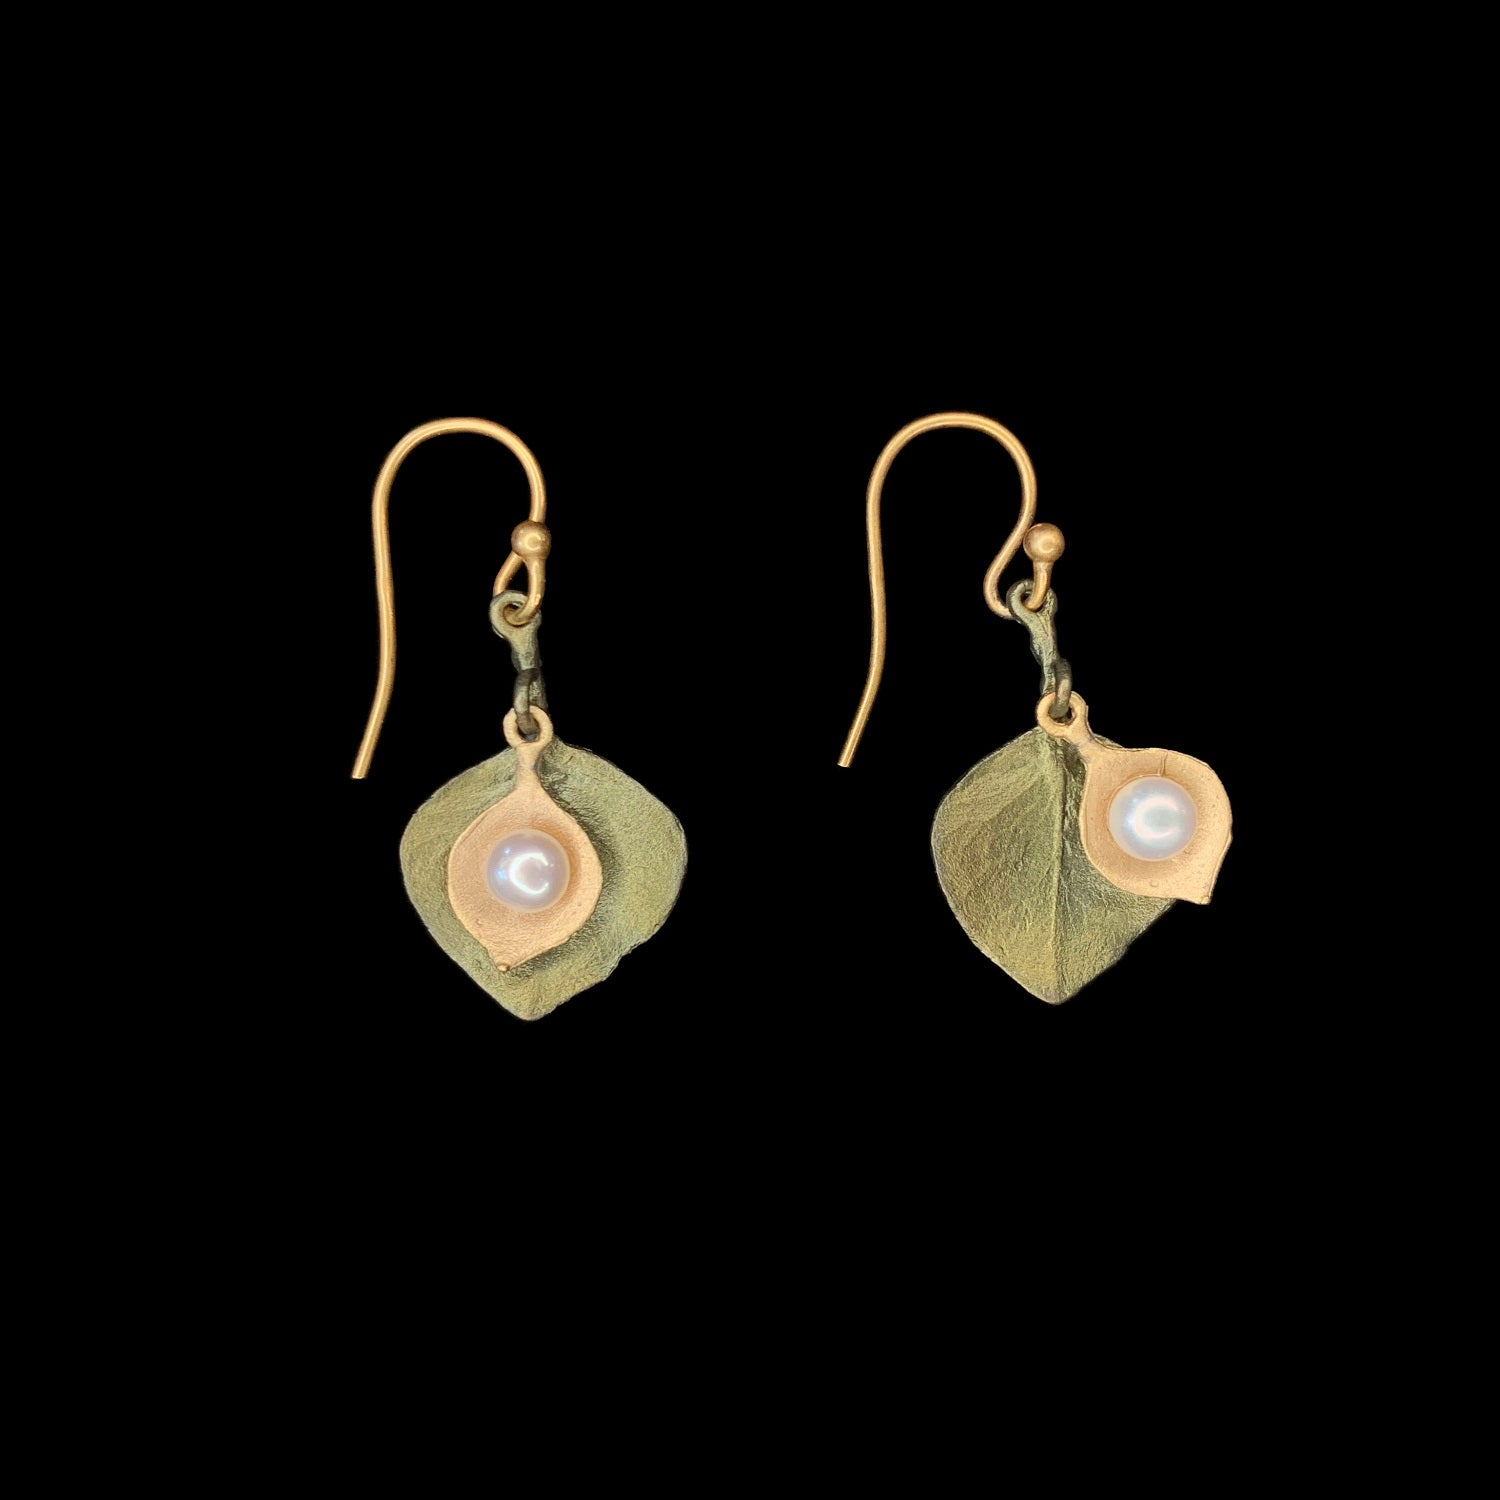 Round Leaf Eucalyptus Earrings - Pearl Wire